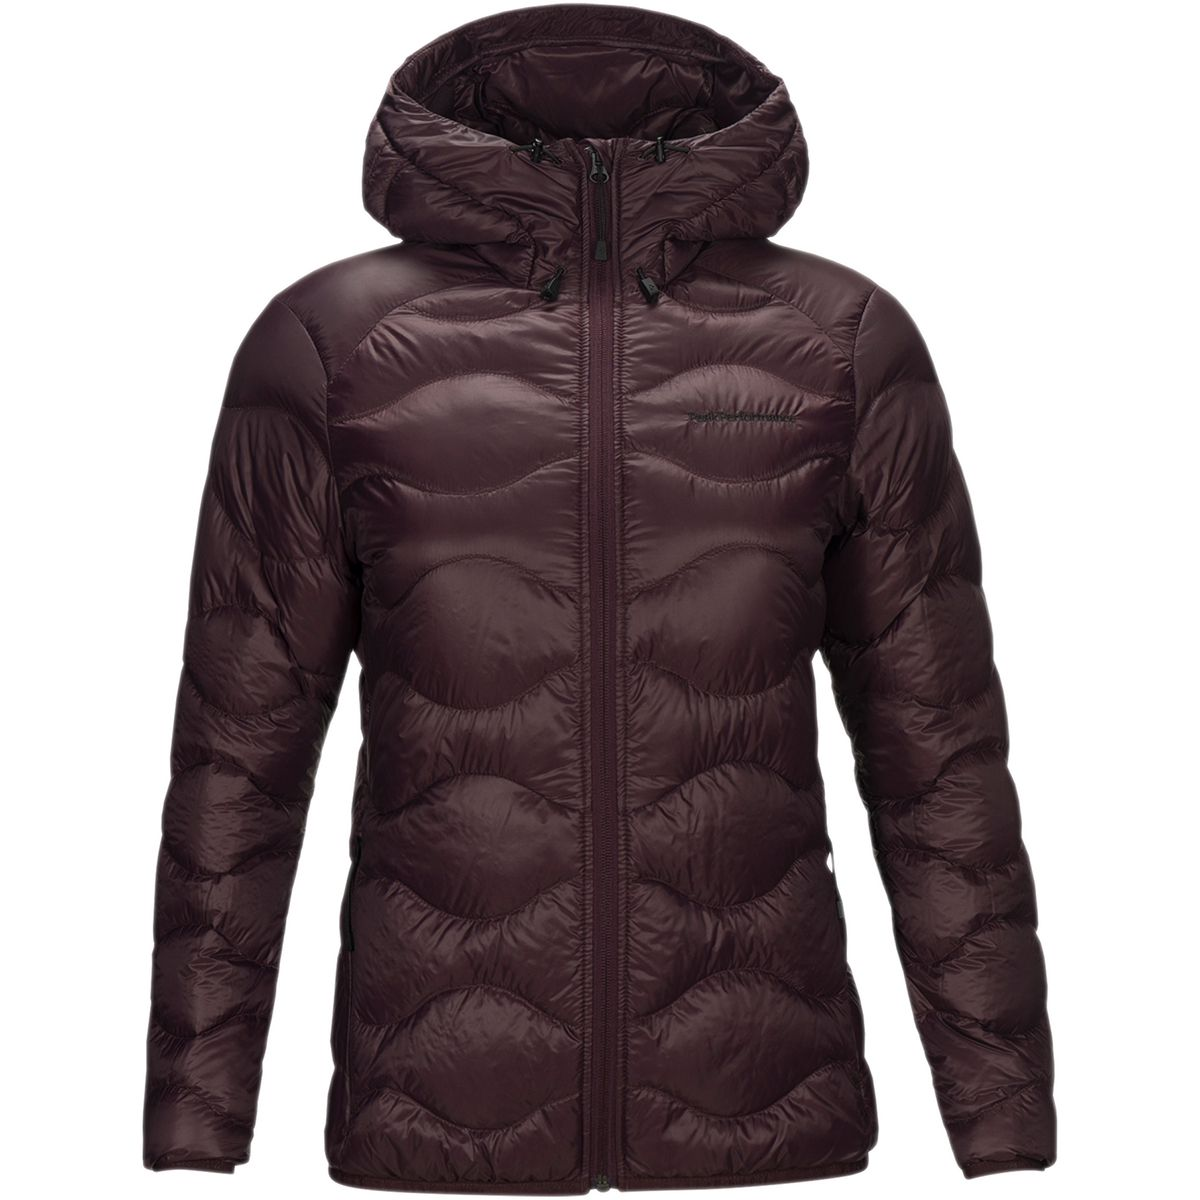 Peak Performance Damen Helium Jacke (Größe XS, Lila) | Isolationsjacken > Damen